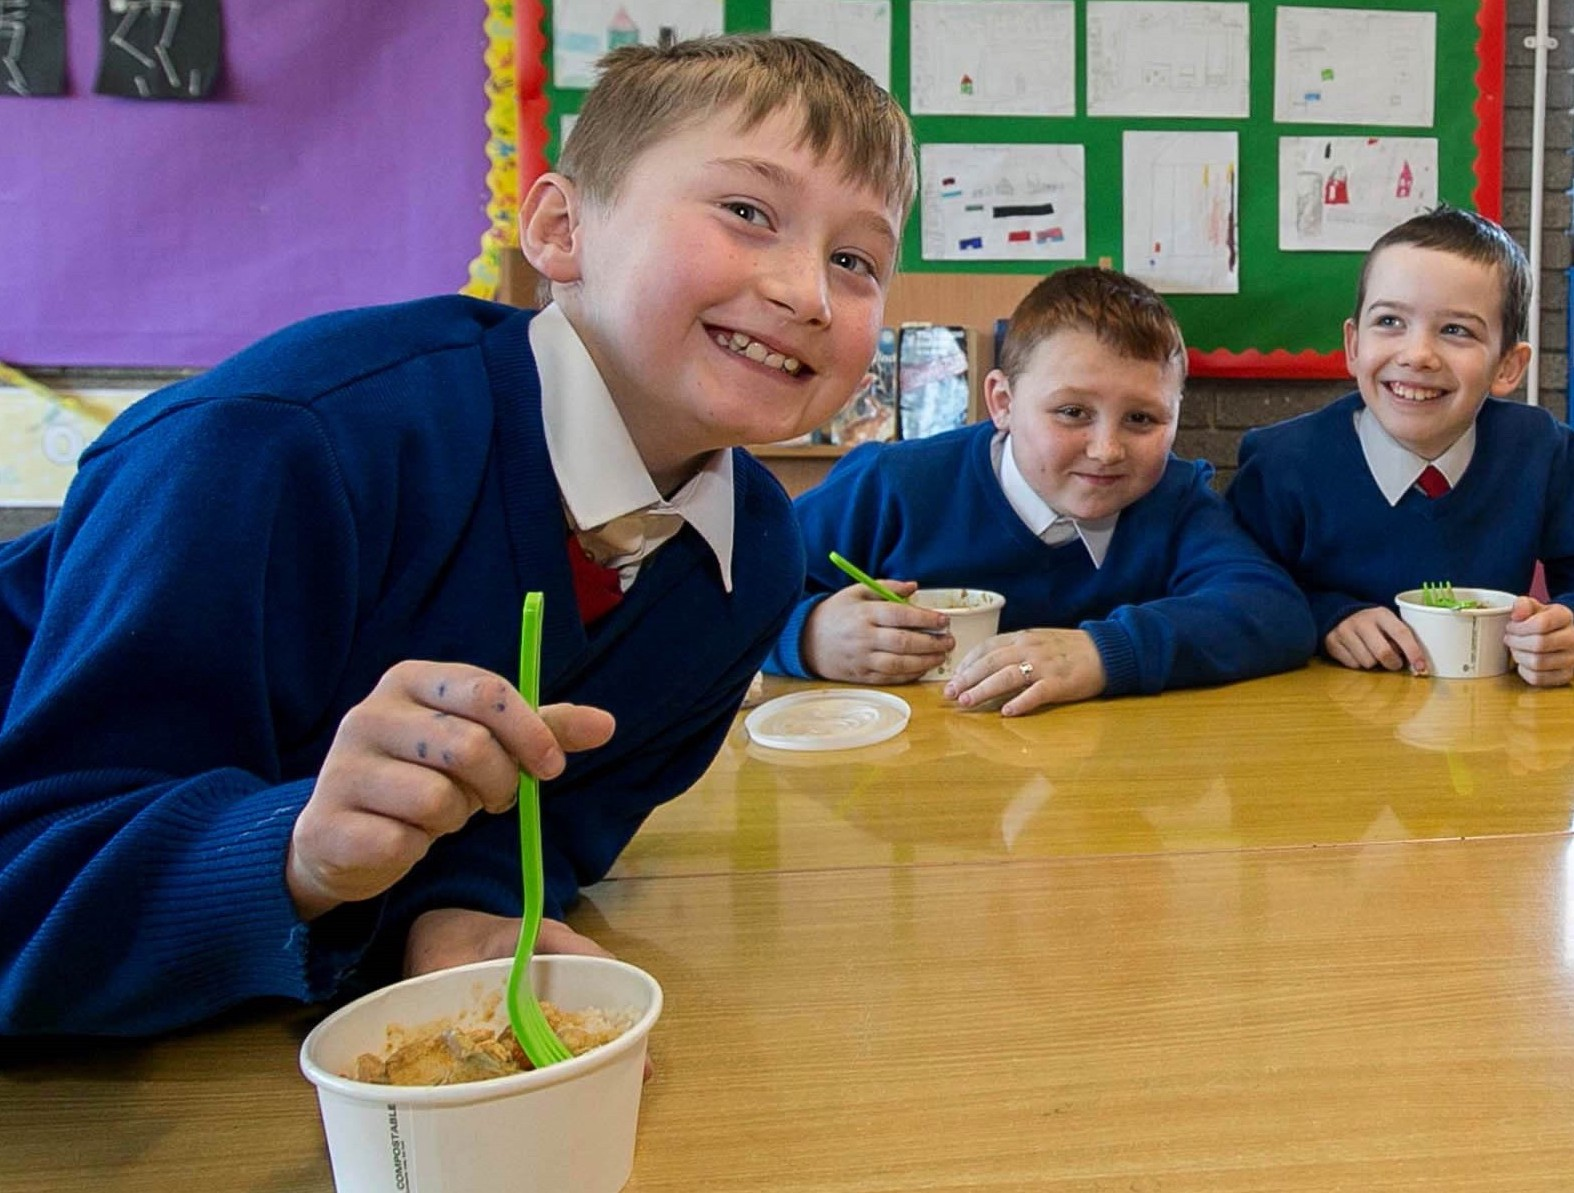 Hot Meals Scheme - Carambola, a local school meals company based in Annacotty Business Park are delighted to be able to provide support and nutritious hot meals to the schools in Limerick.